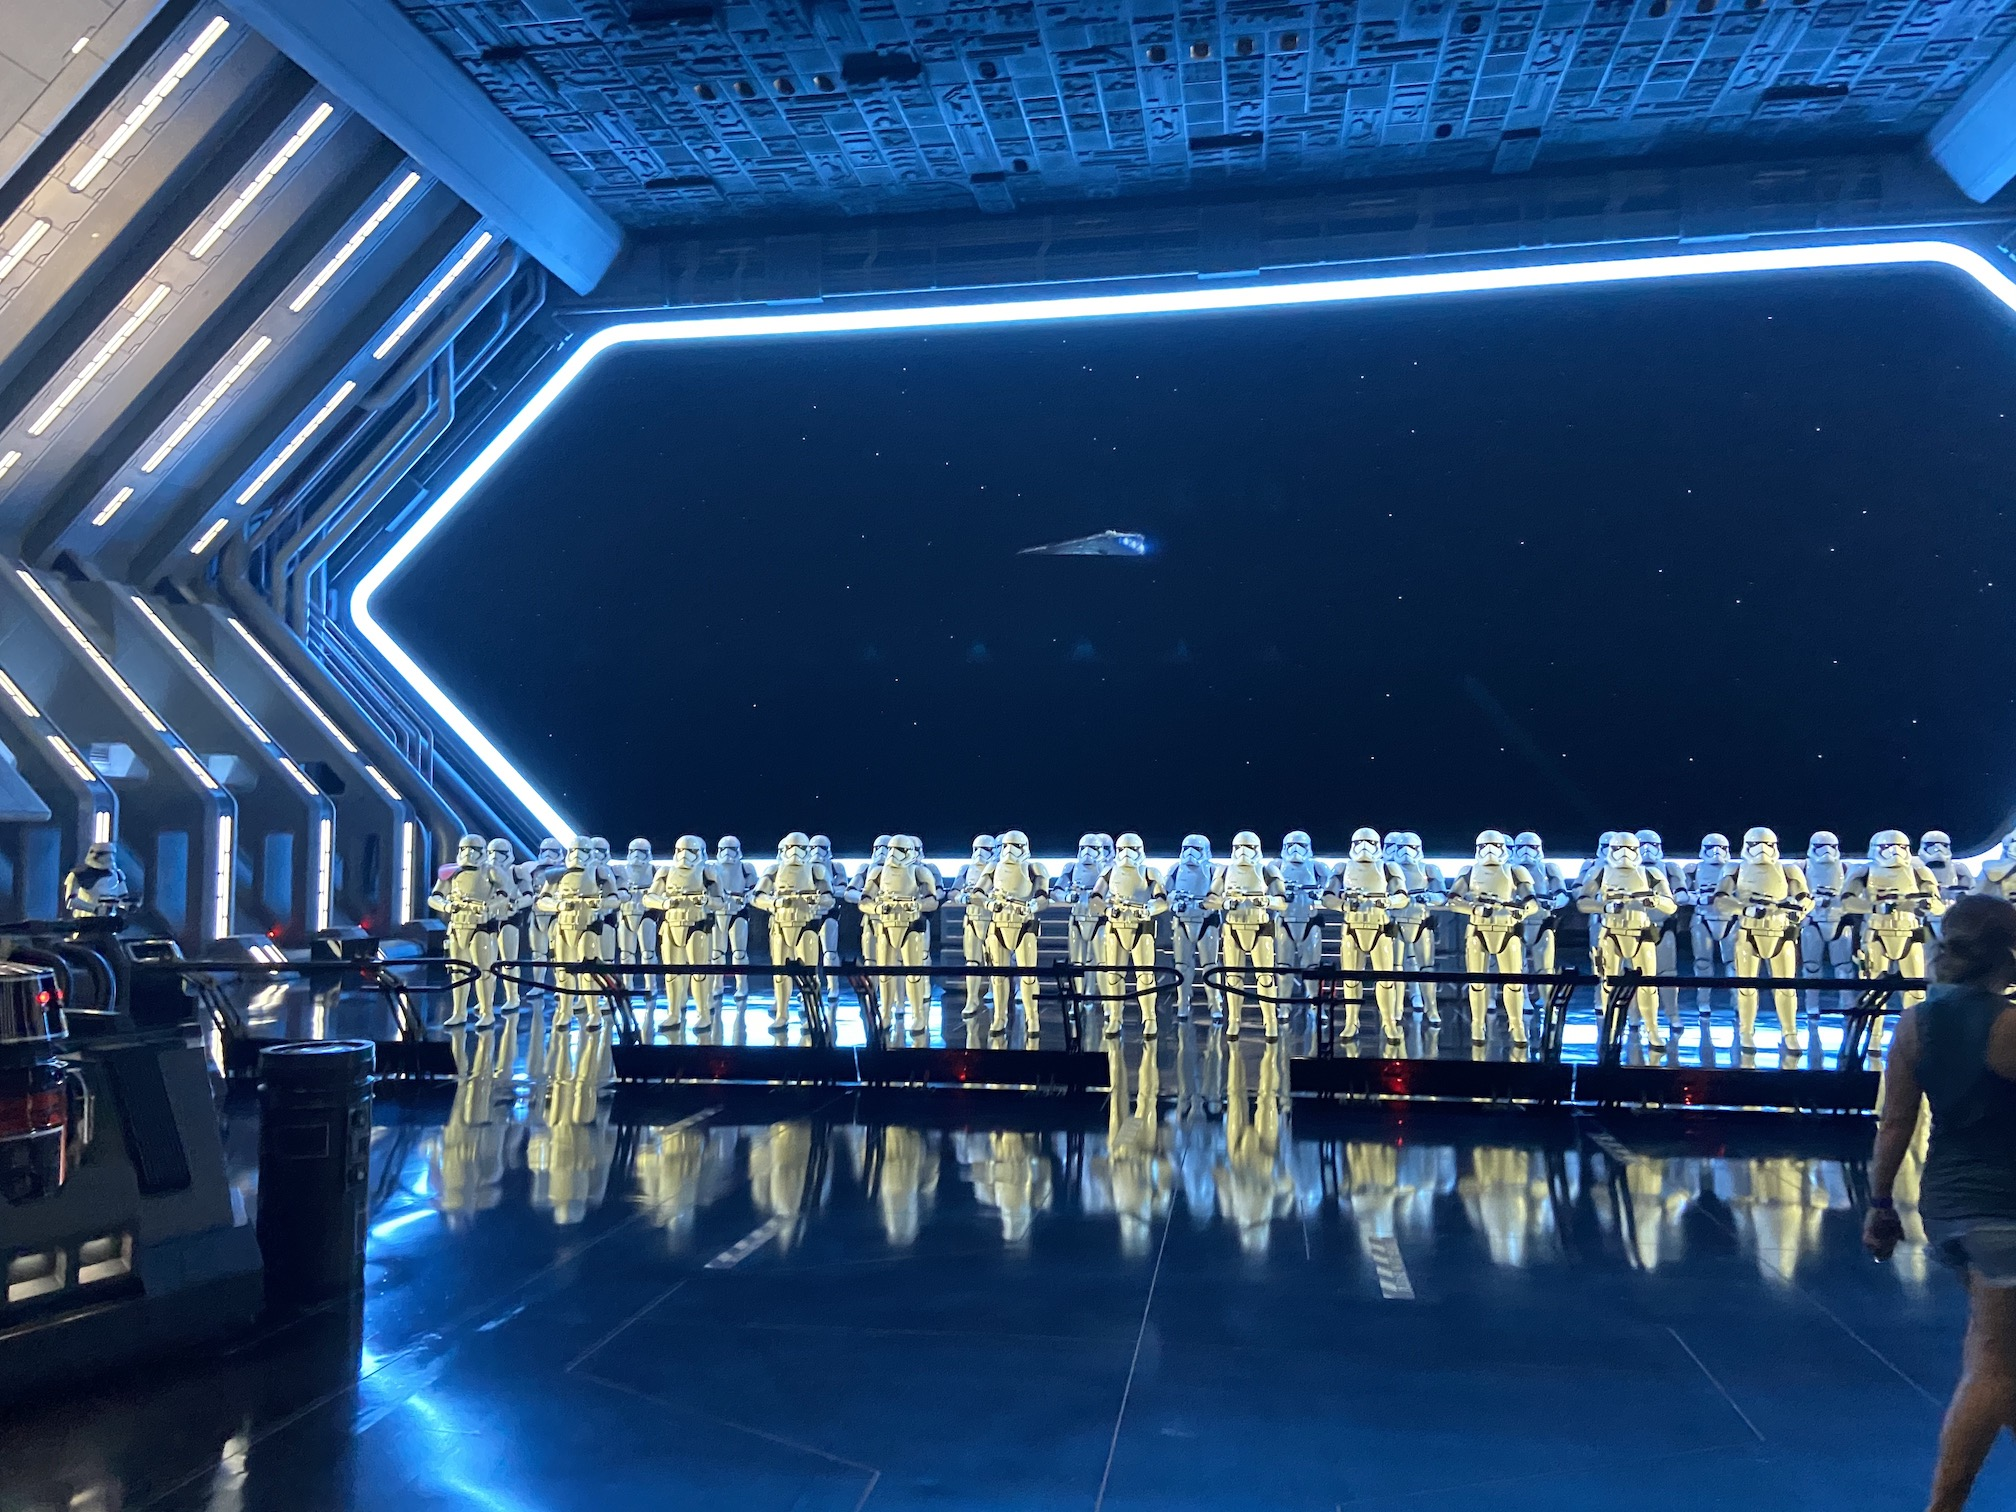 Star Wars Galaxy's Edge - Rise of the Resistance